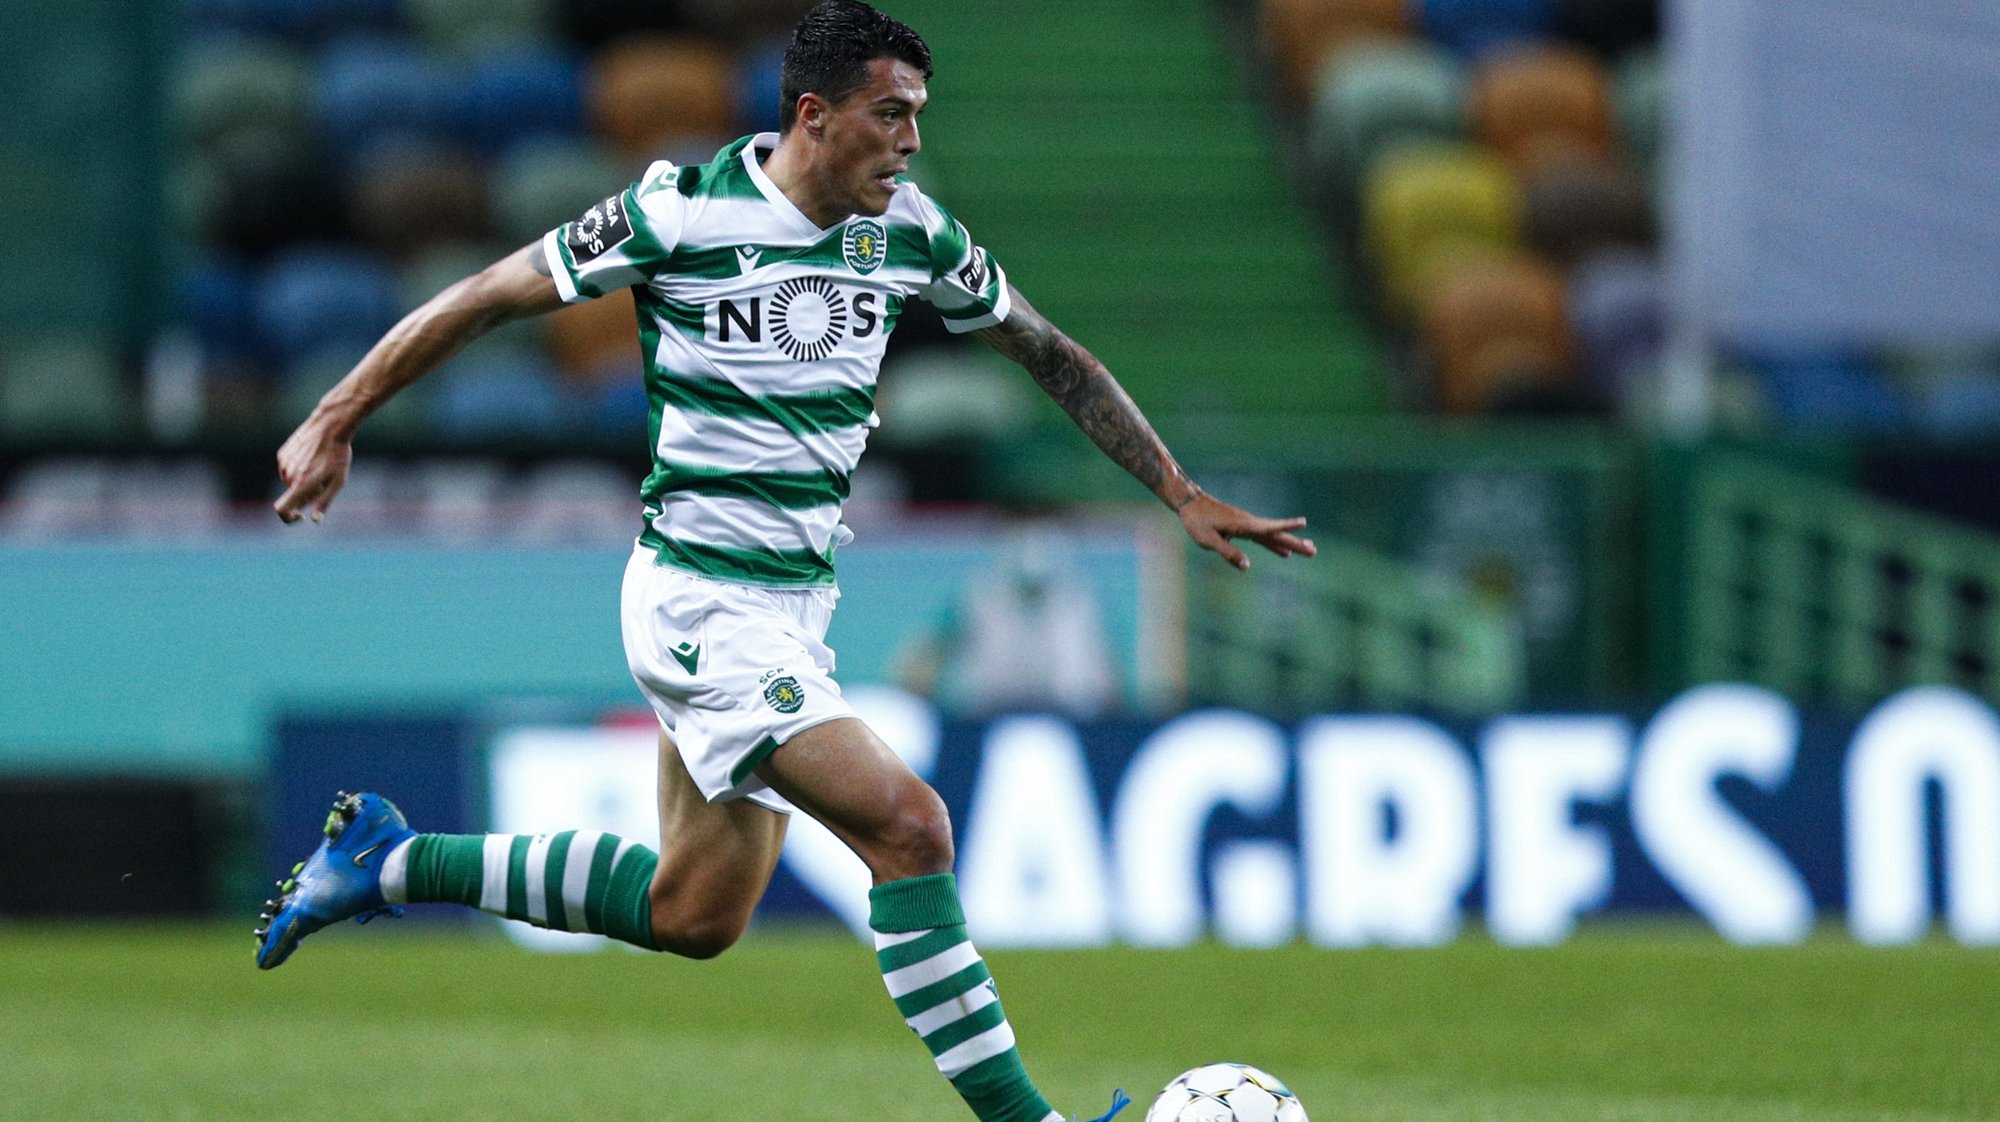 Sporting´s player  Pedro Porro, in action during their Portuguese First League soccer match held at Alvalade Stadium in Lisbon, Portugal, 21st April 2021.  ANTONIO COTRIM/LUSA